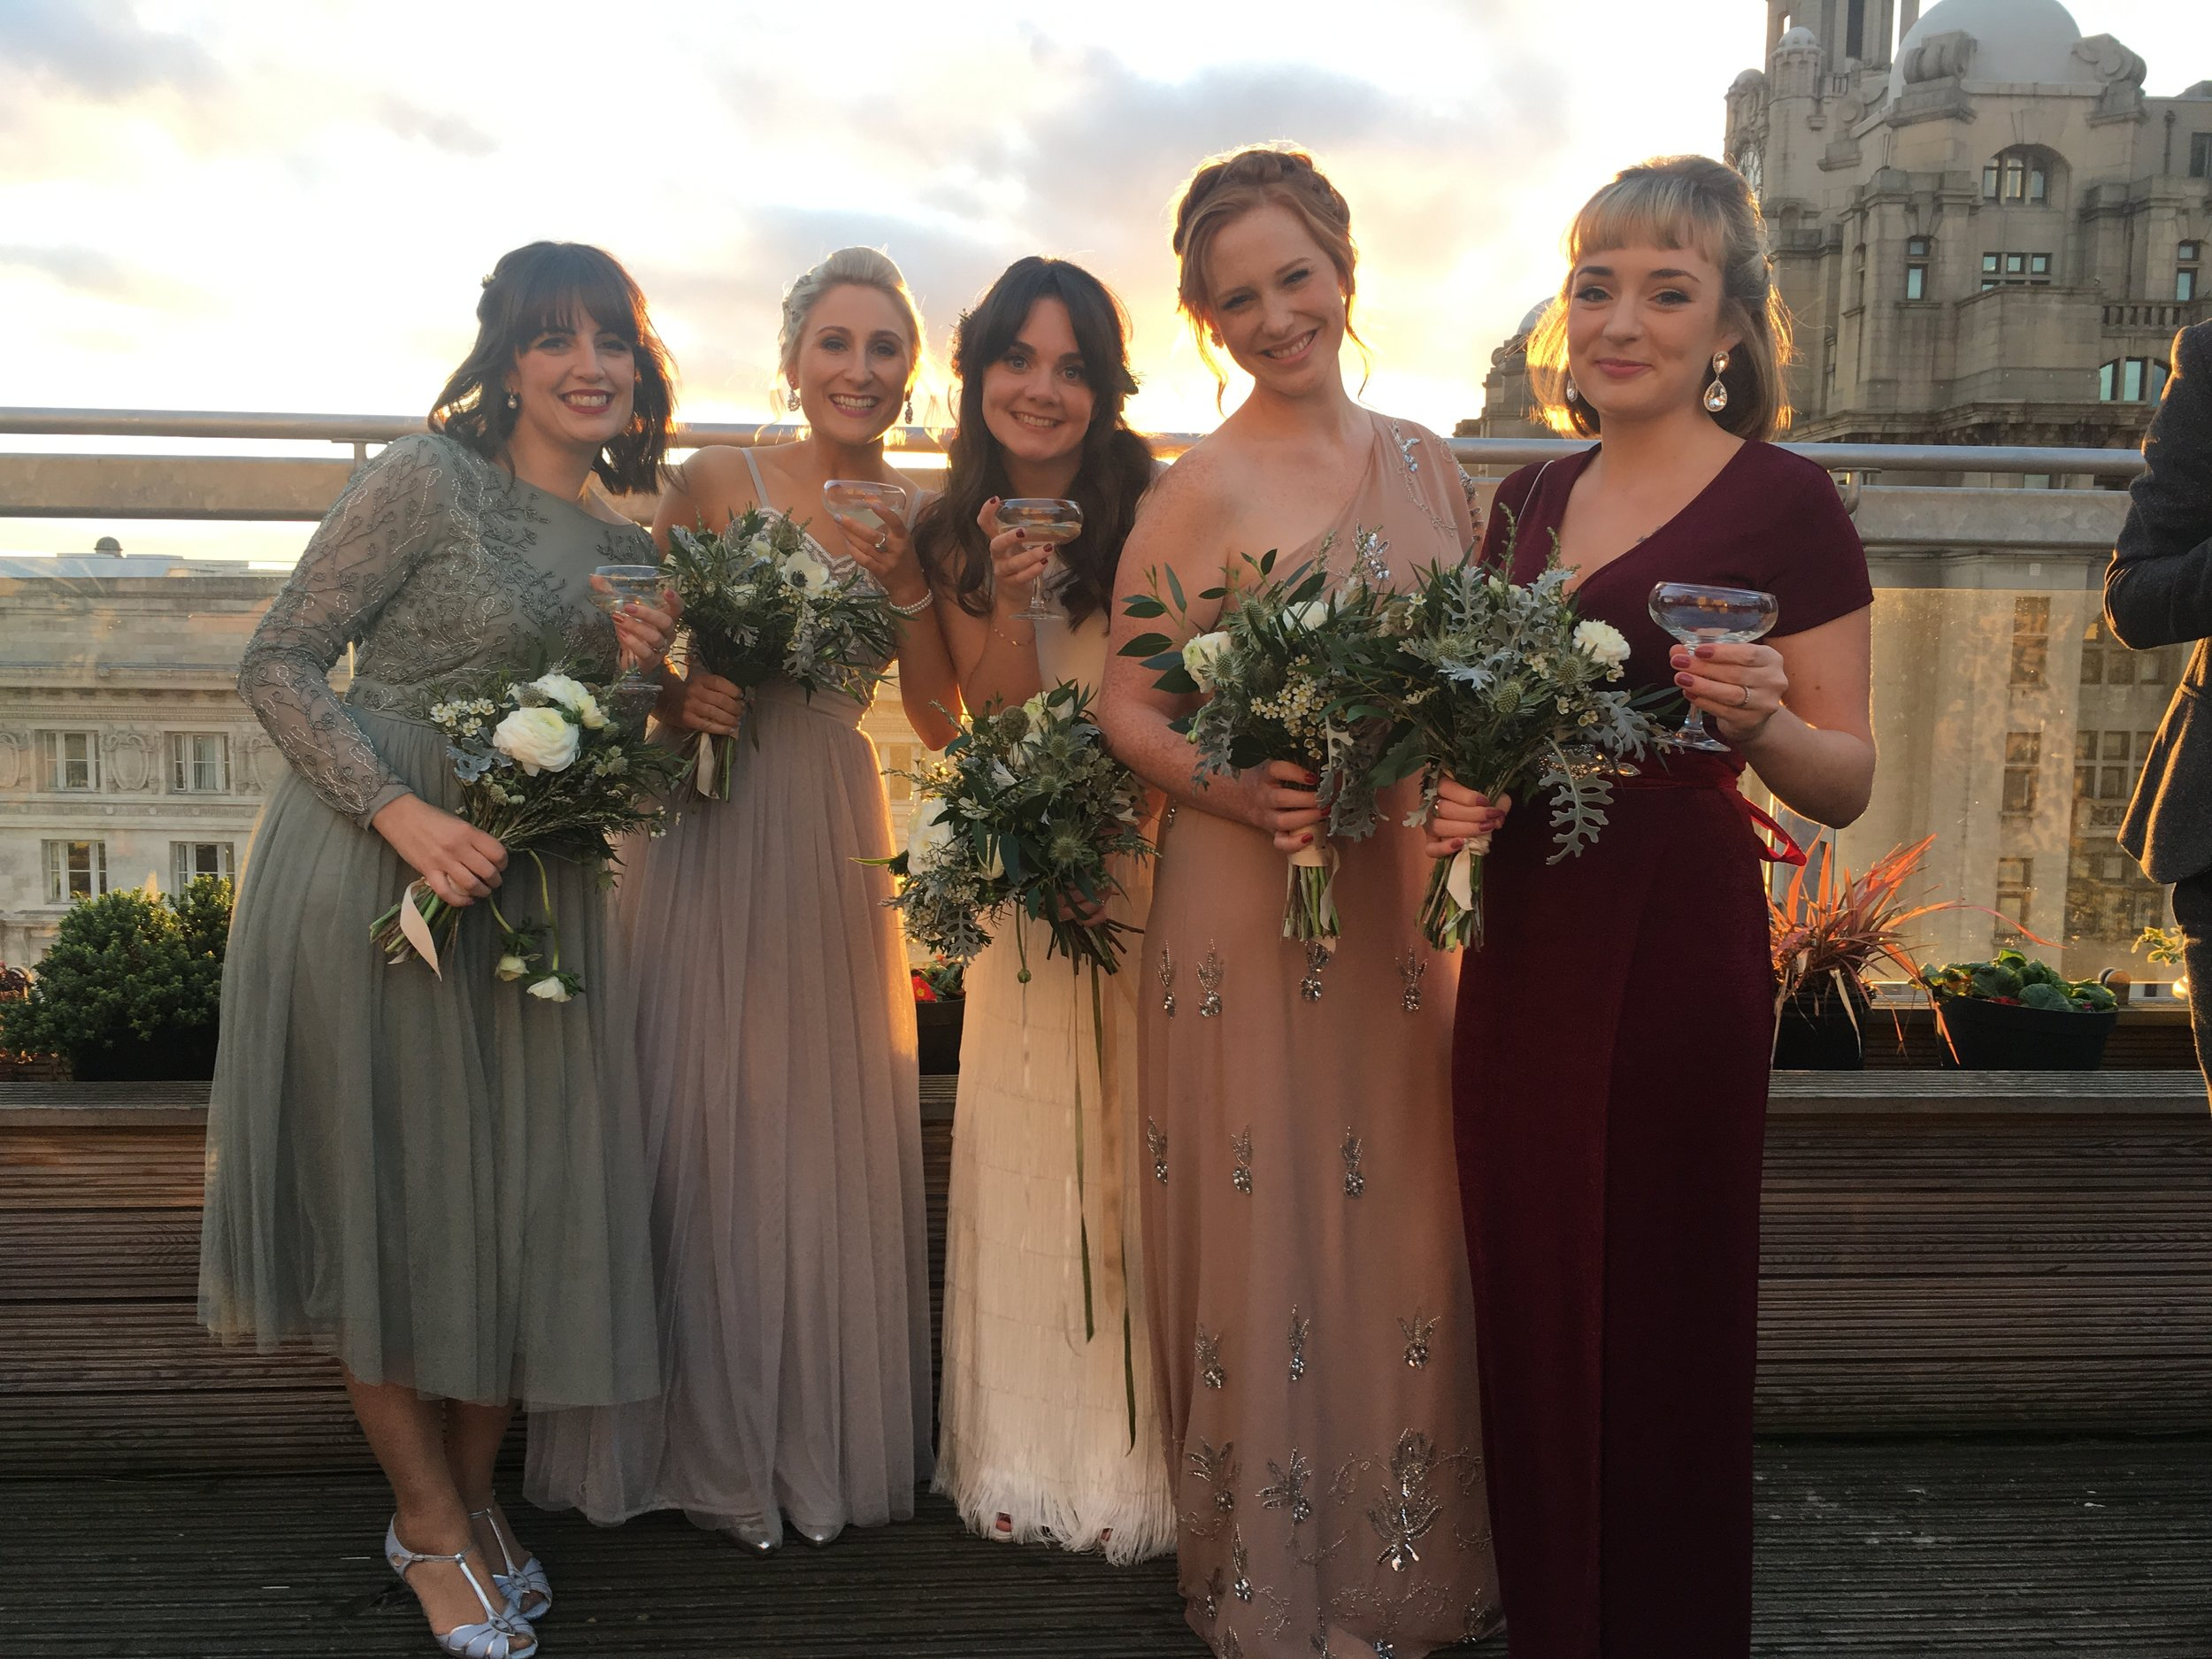 Bridesmaids and bride together on the rooftop terrace at Oh Me Oh My, Liverpool. Pinafores and Peonies